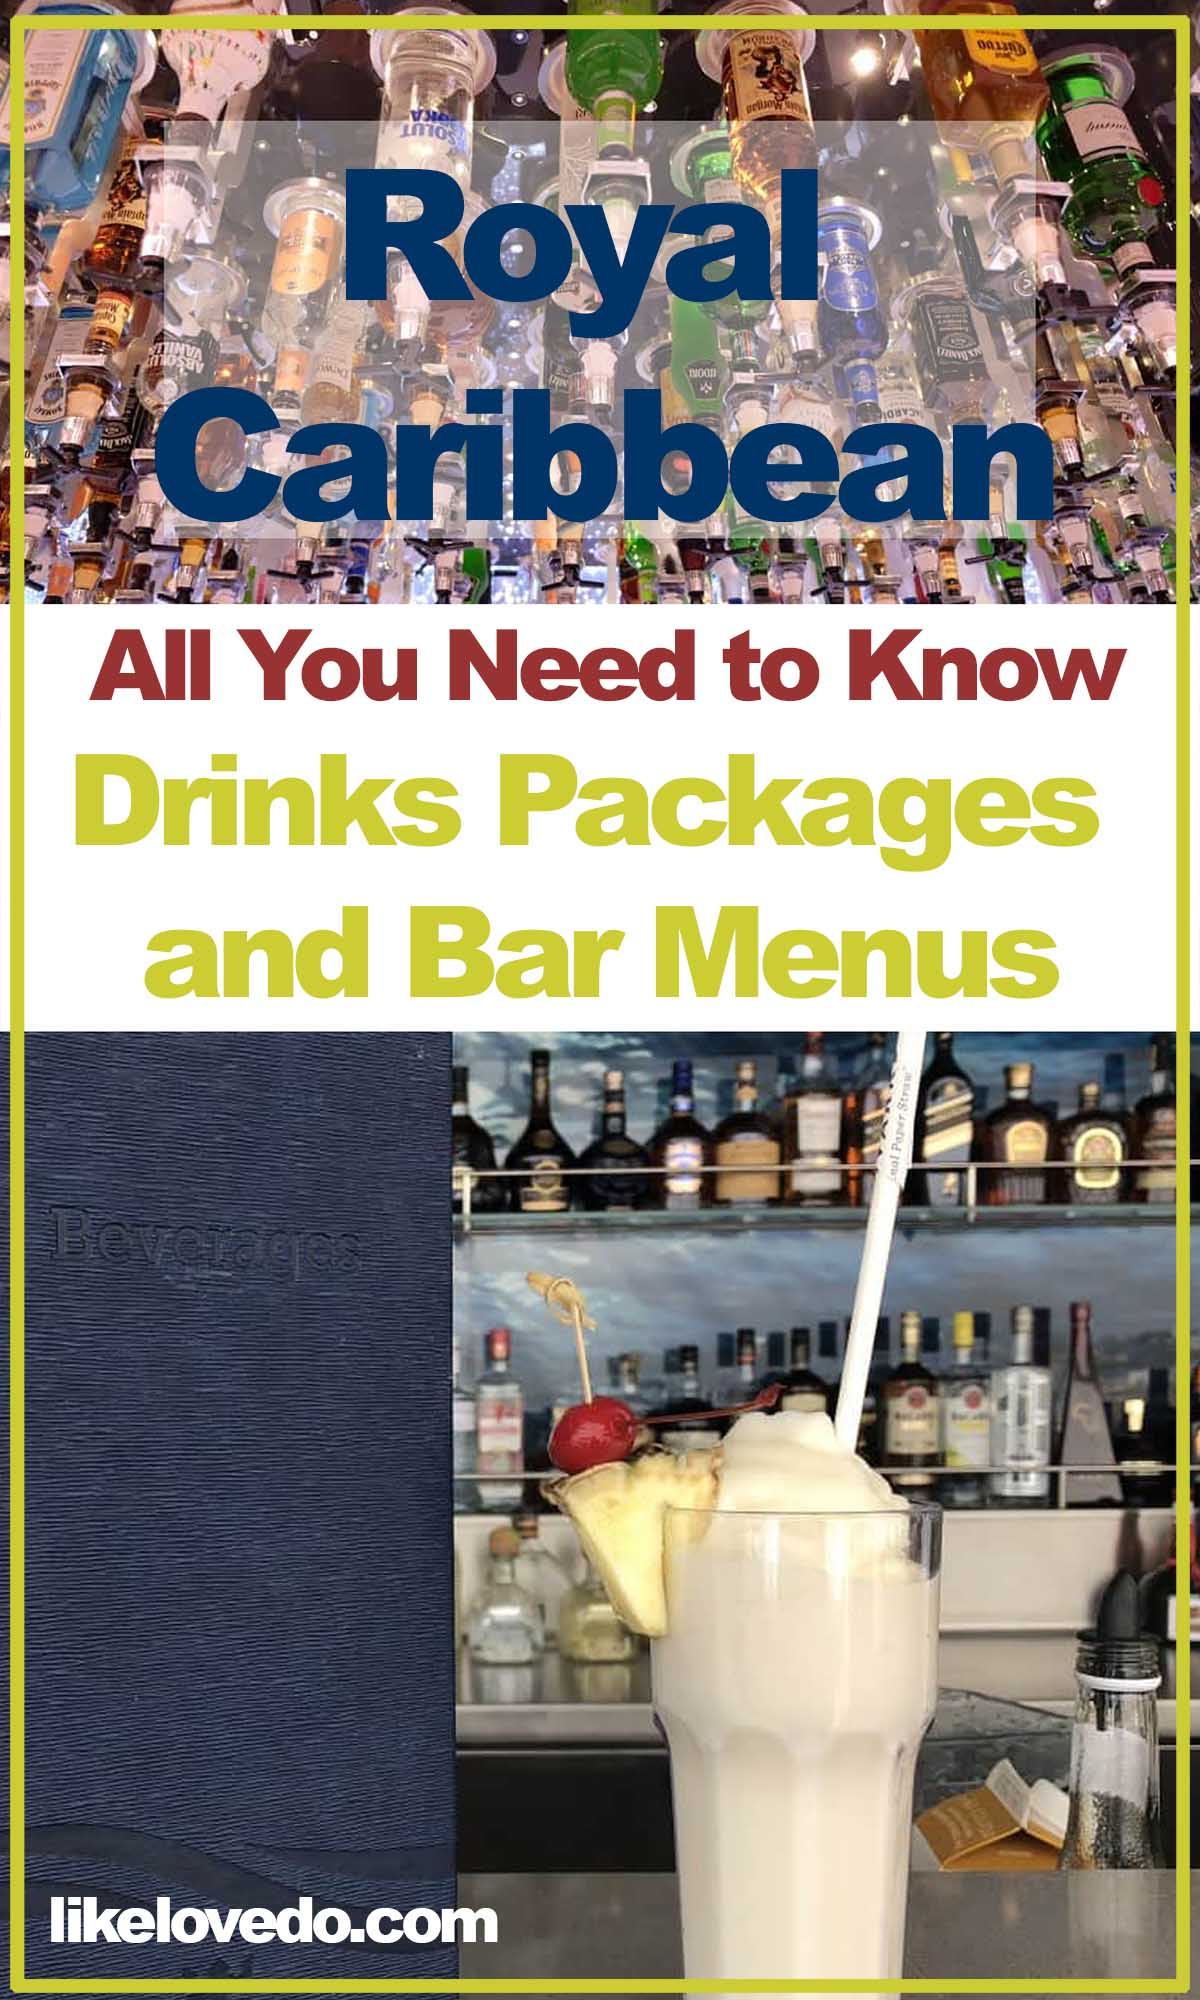 Royal Caribbean all you need to know about drink packages and bar menus.